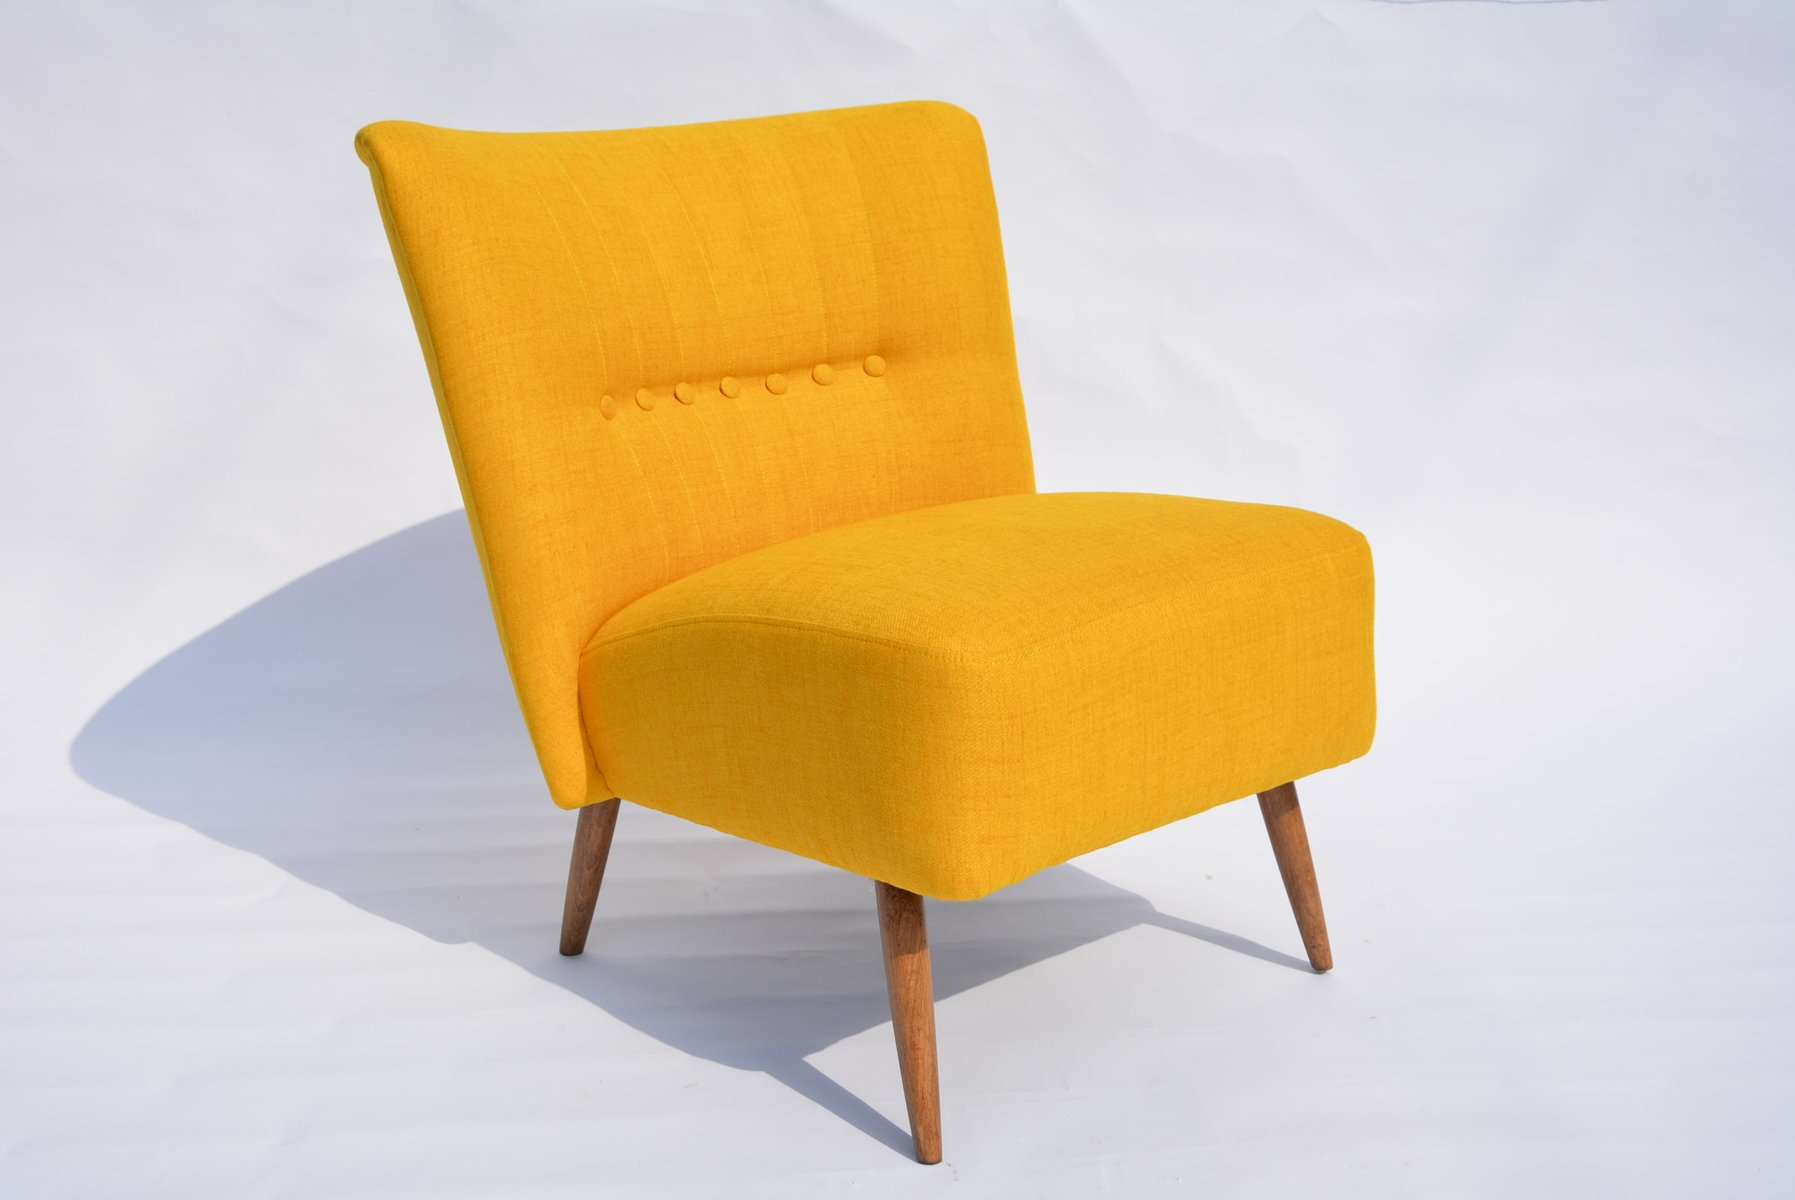 German Yellow Cocktail Chair 1950s for sale at Pamono